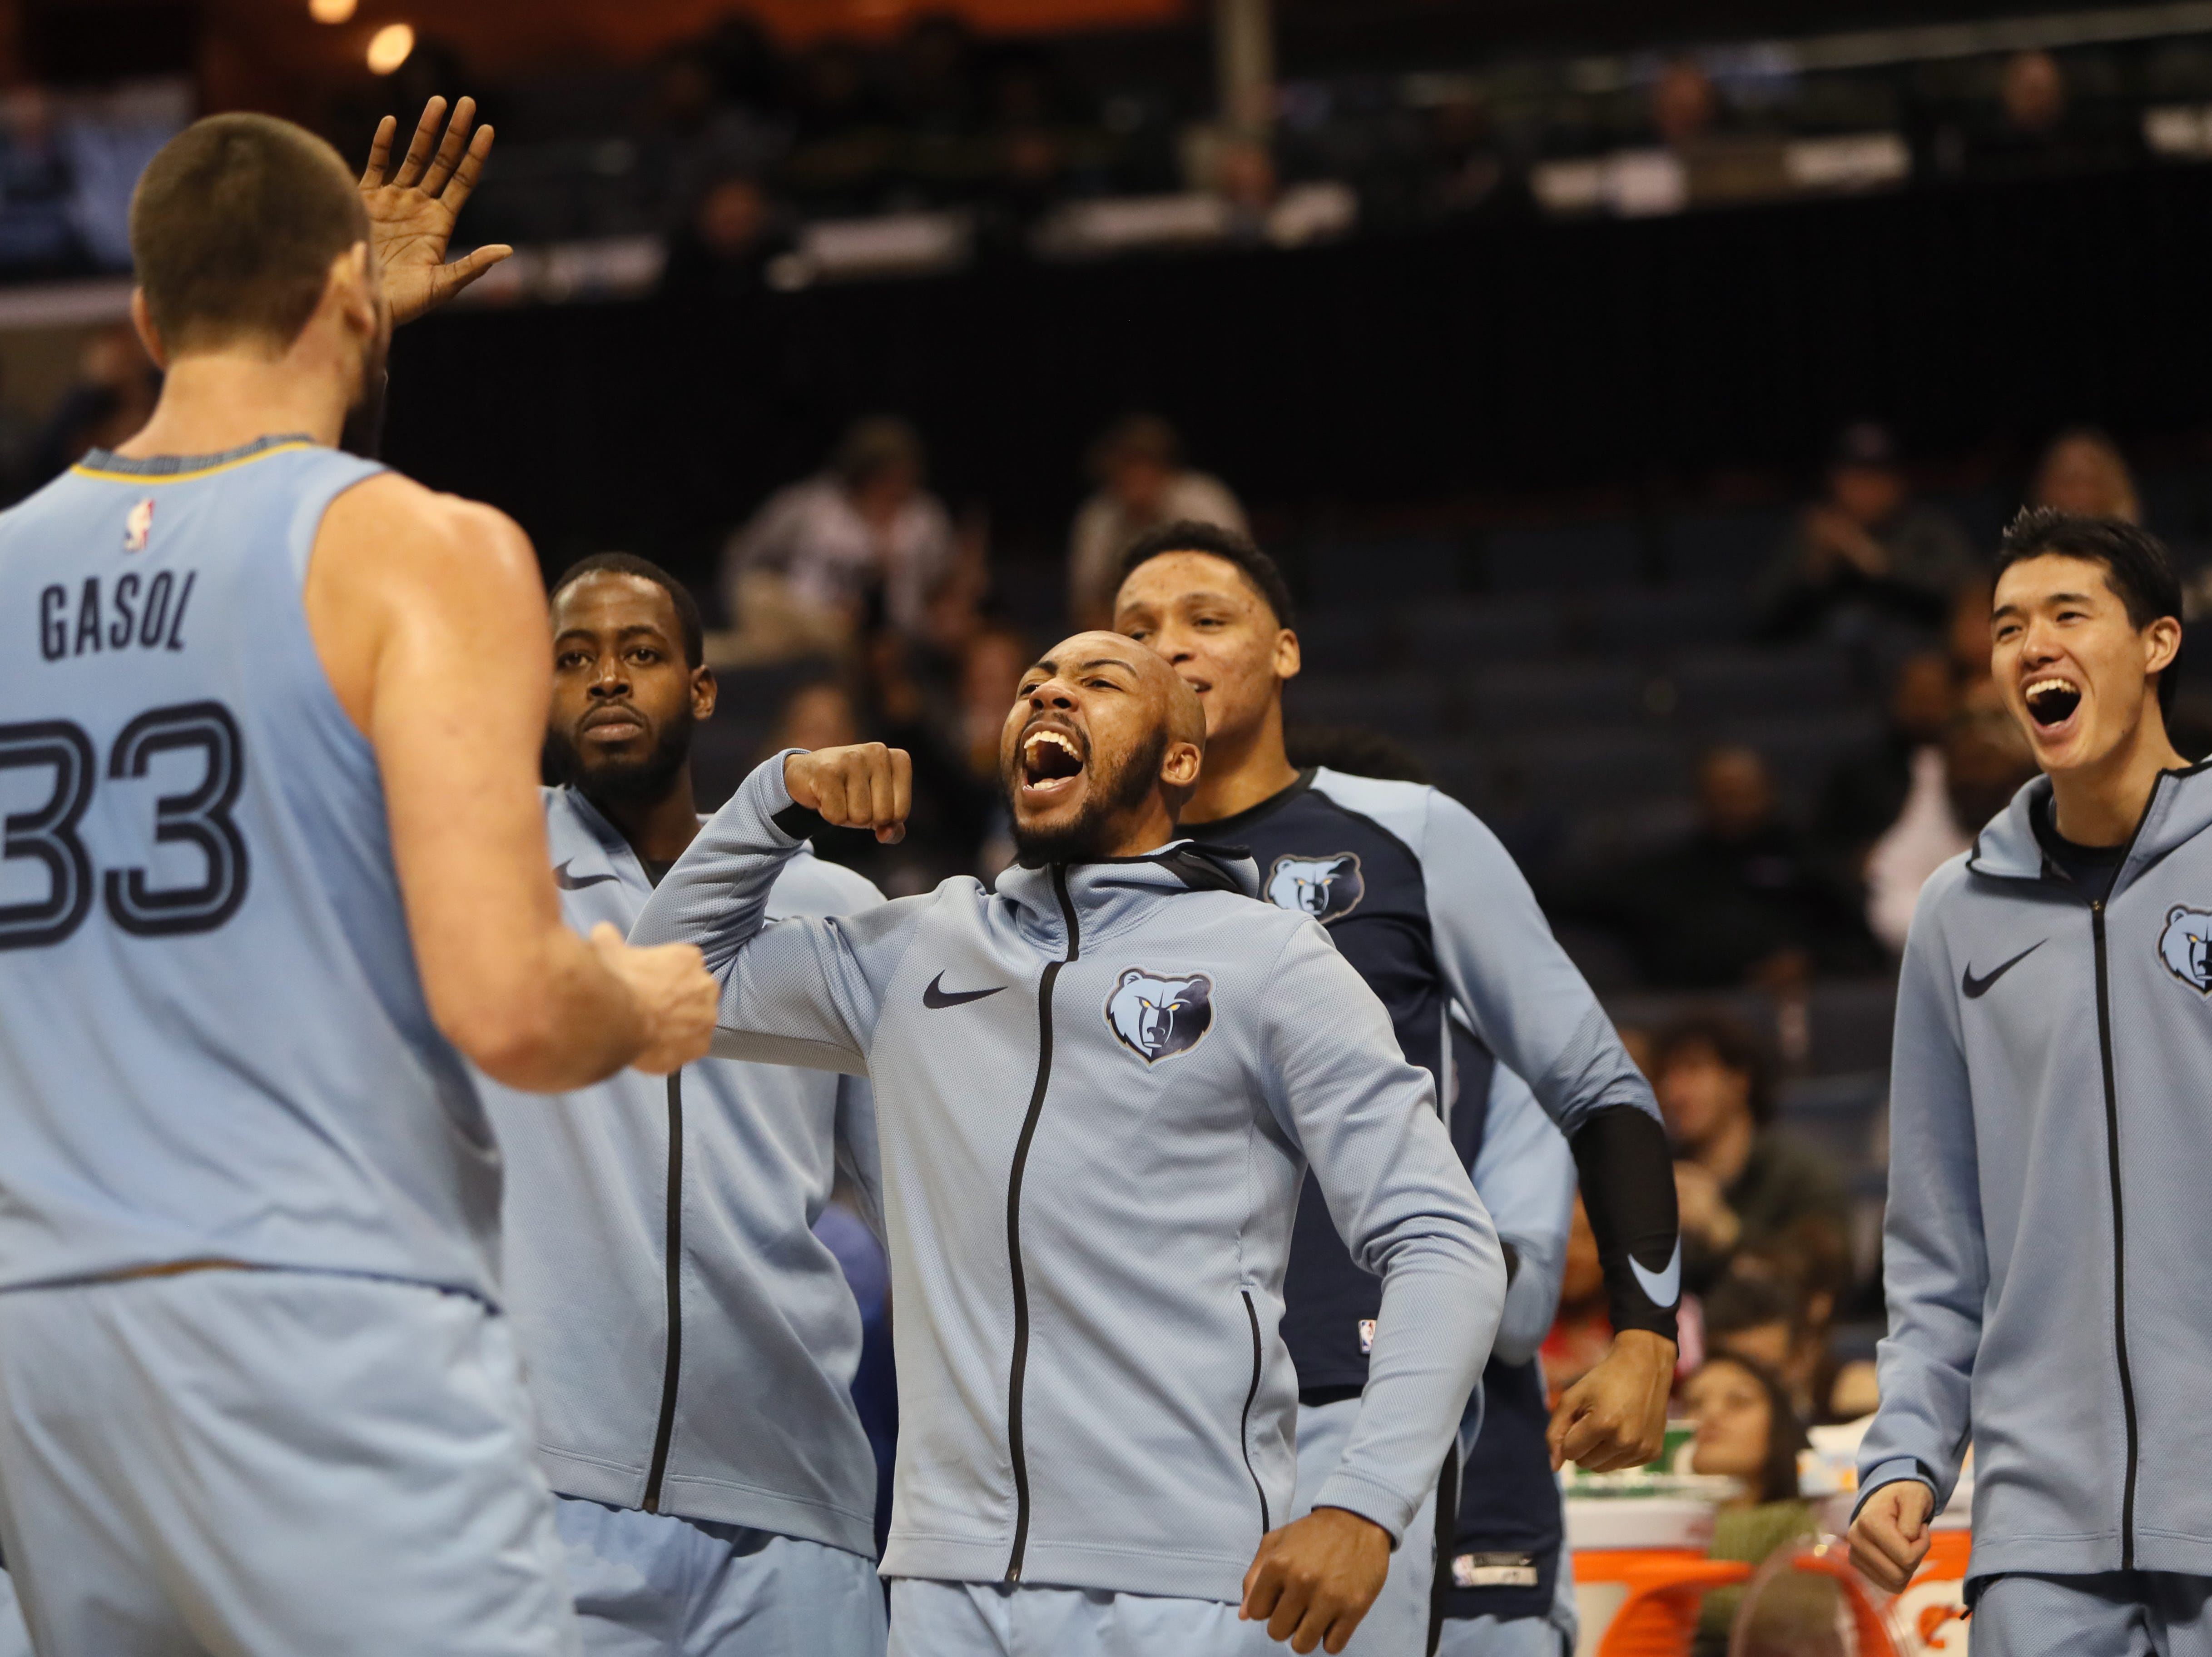 Memphis Grizzlies teammates Jevon Carter and  JaMychal Green congatulate Marc Gasol after a made basket against San Antonio Spurs during their game at the FedExForum on Wednesday, Jan. 9, 2019.